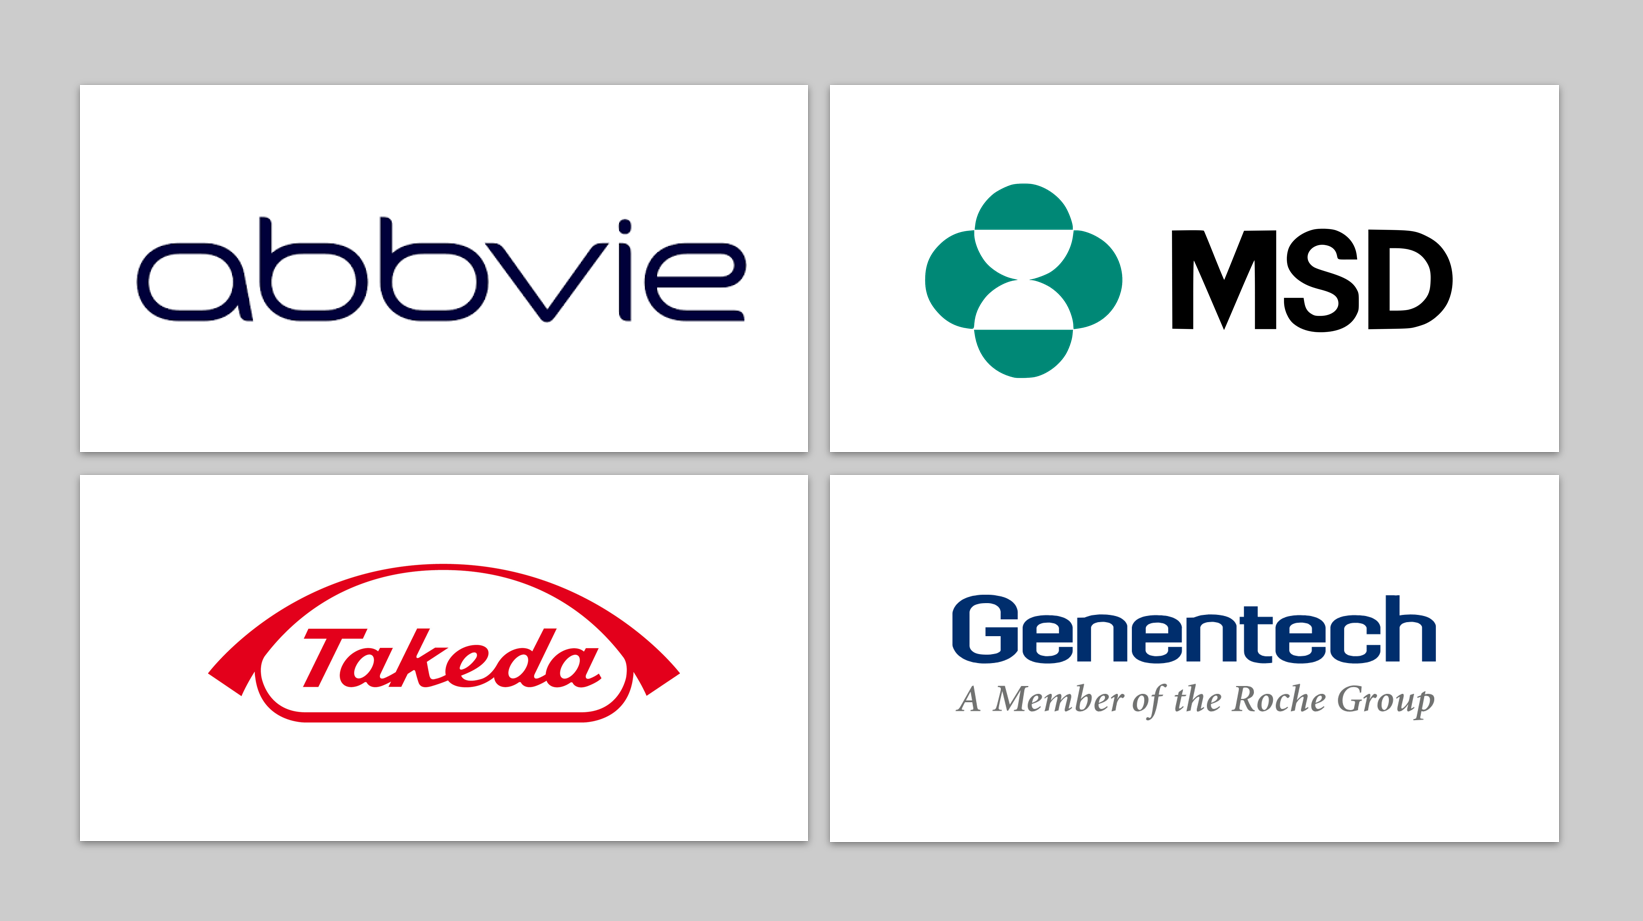 Pharma News - AbbVie, MSD, Genentech and Takeda rank in the top 20 Best Workplaces in Healthcare & Biopharma